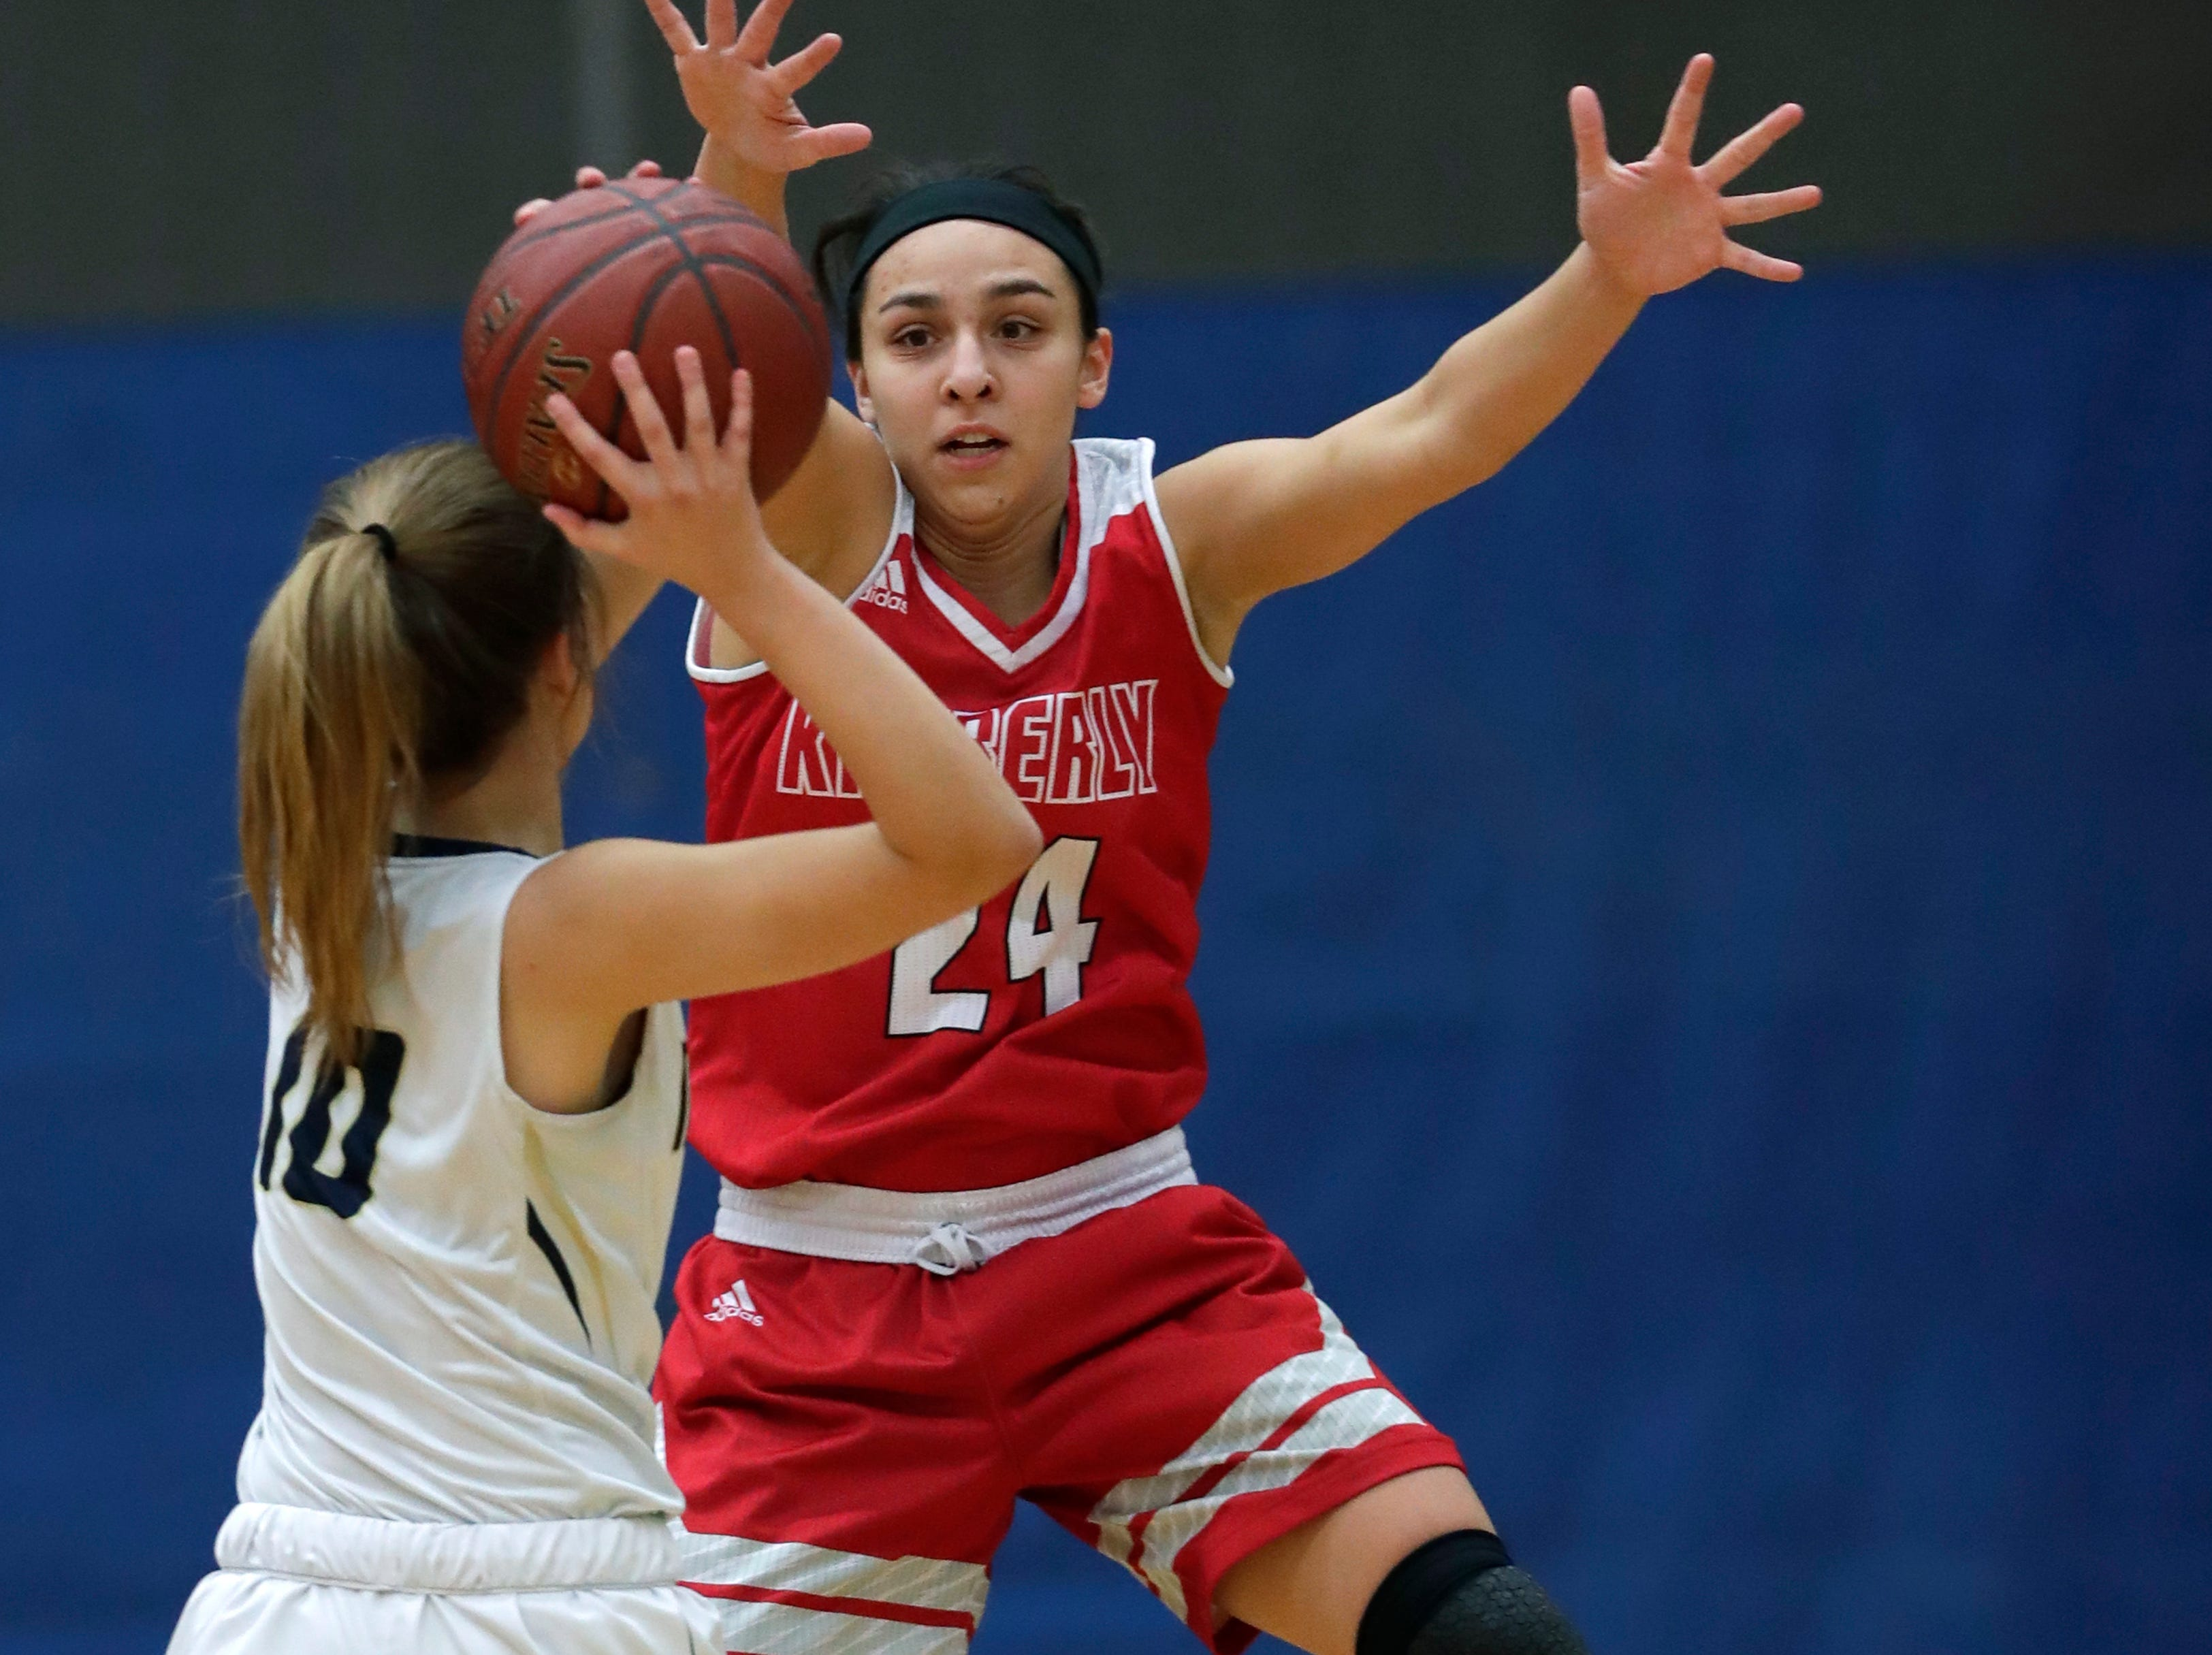 Kimberly High School's Shea Dechant (24) defends against Appleton North High School's Anna Laux (10) during their girls basketball game Tuesday, January 8, 2019, in Appleton, Wis. Dan Powers/USA TODAY NETWORK-Wisconsin